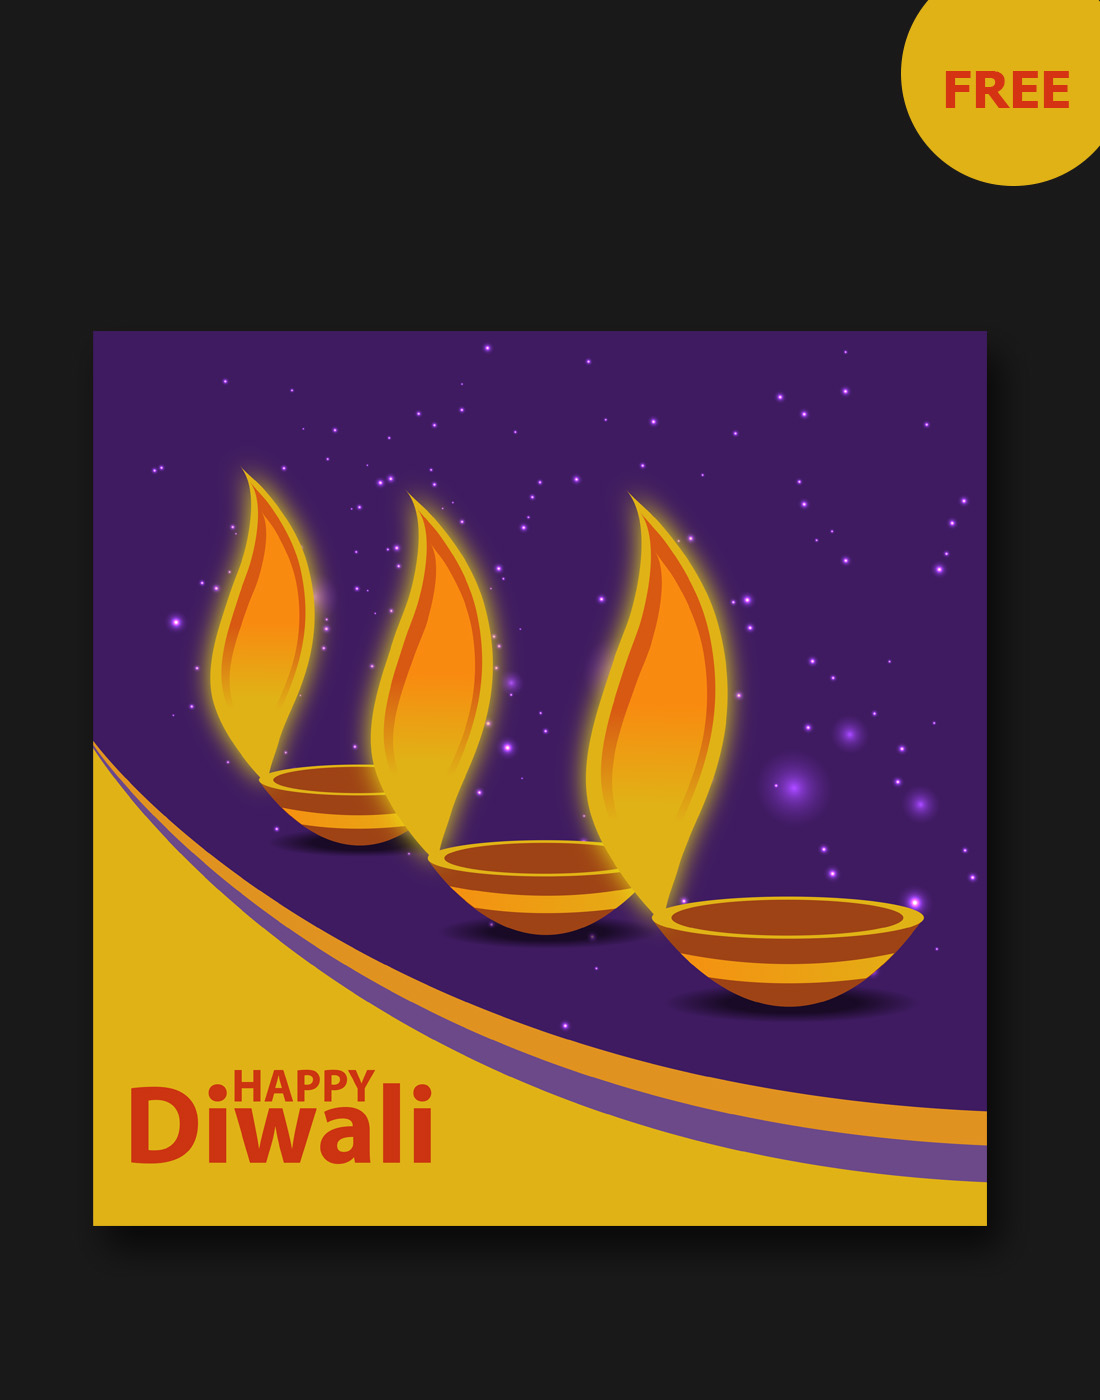 diwali vector graphic